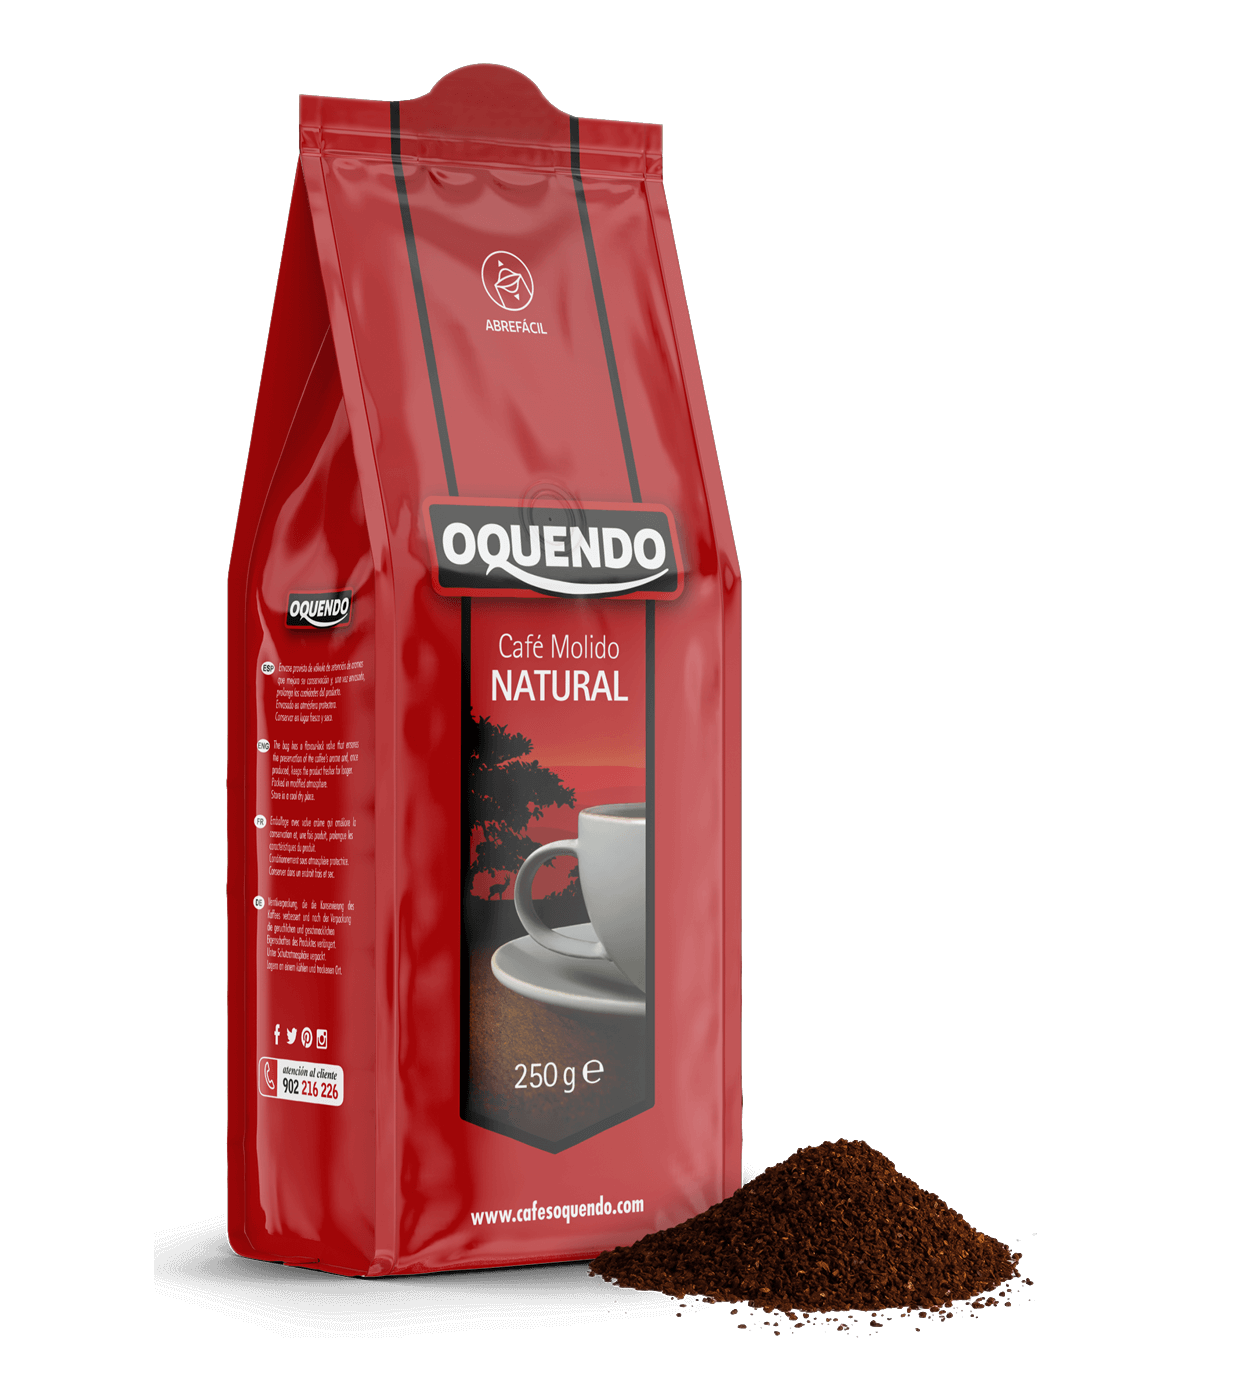 oquendo-64-molido-natural-250